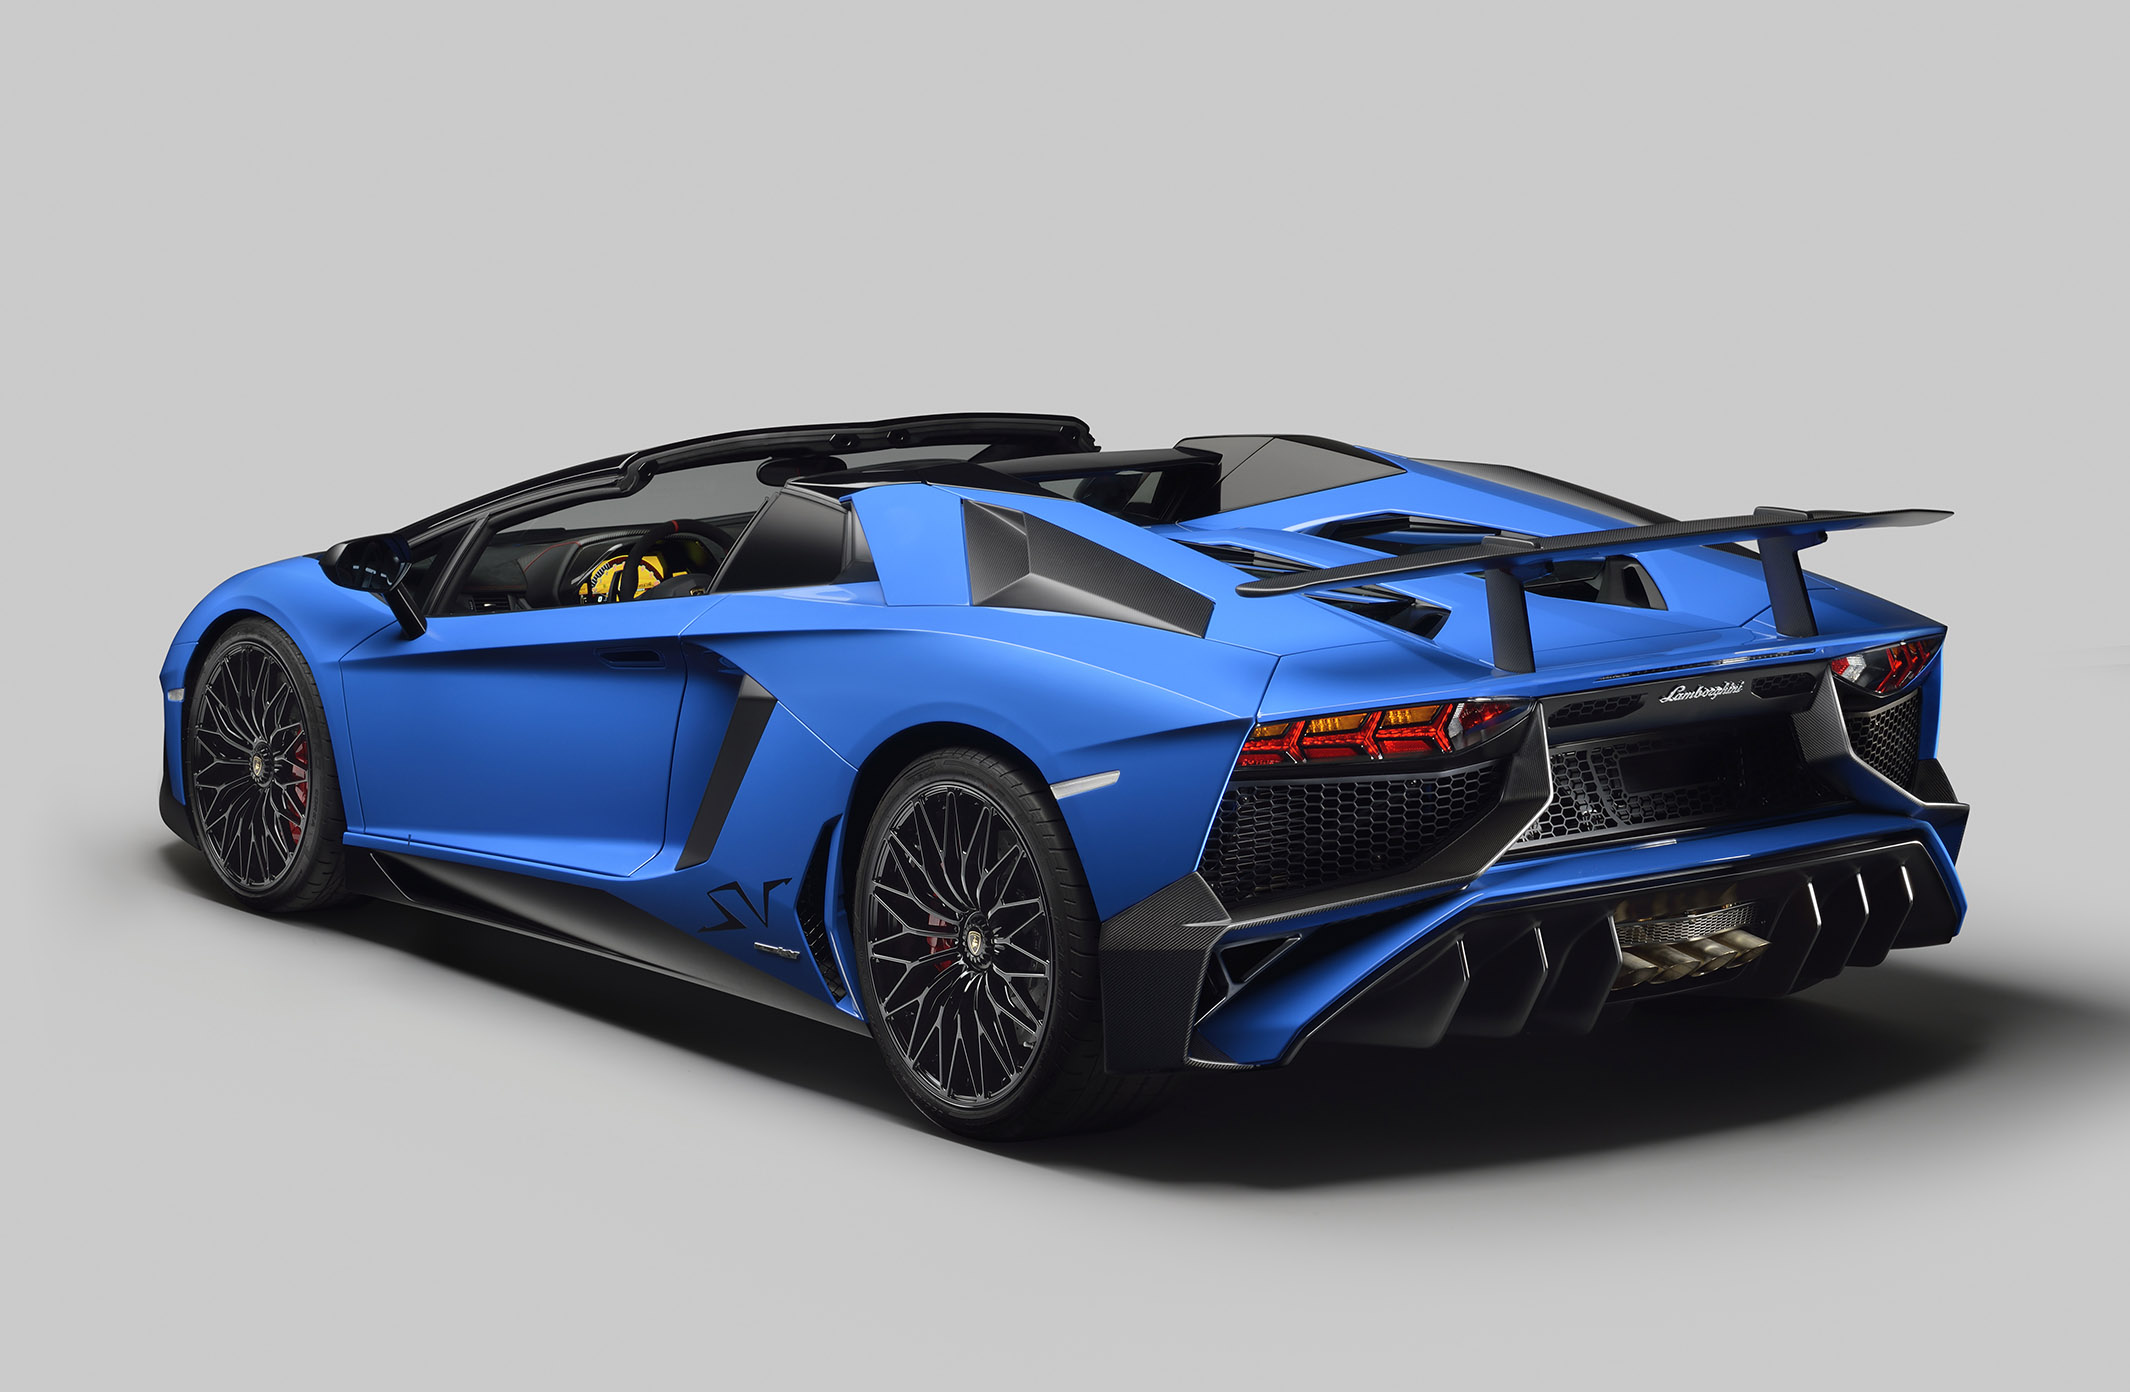 lamborghini debuts aventador superveloce roadster and announces pricing. Black Bedroom Furniture Sets. Home Design Ideas